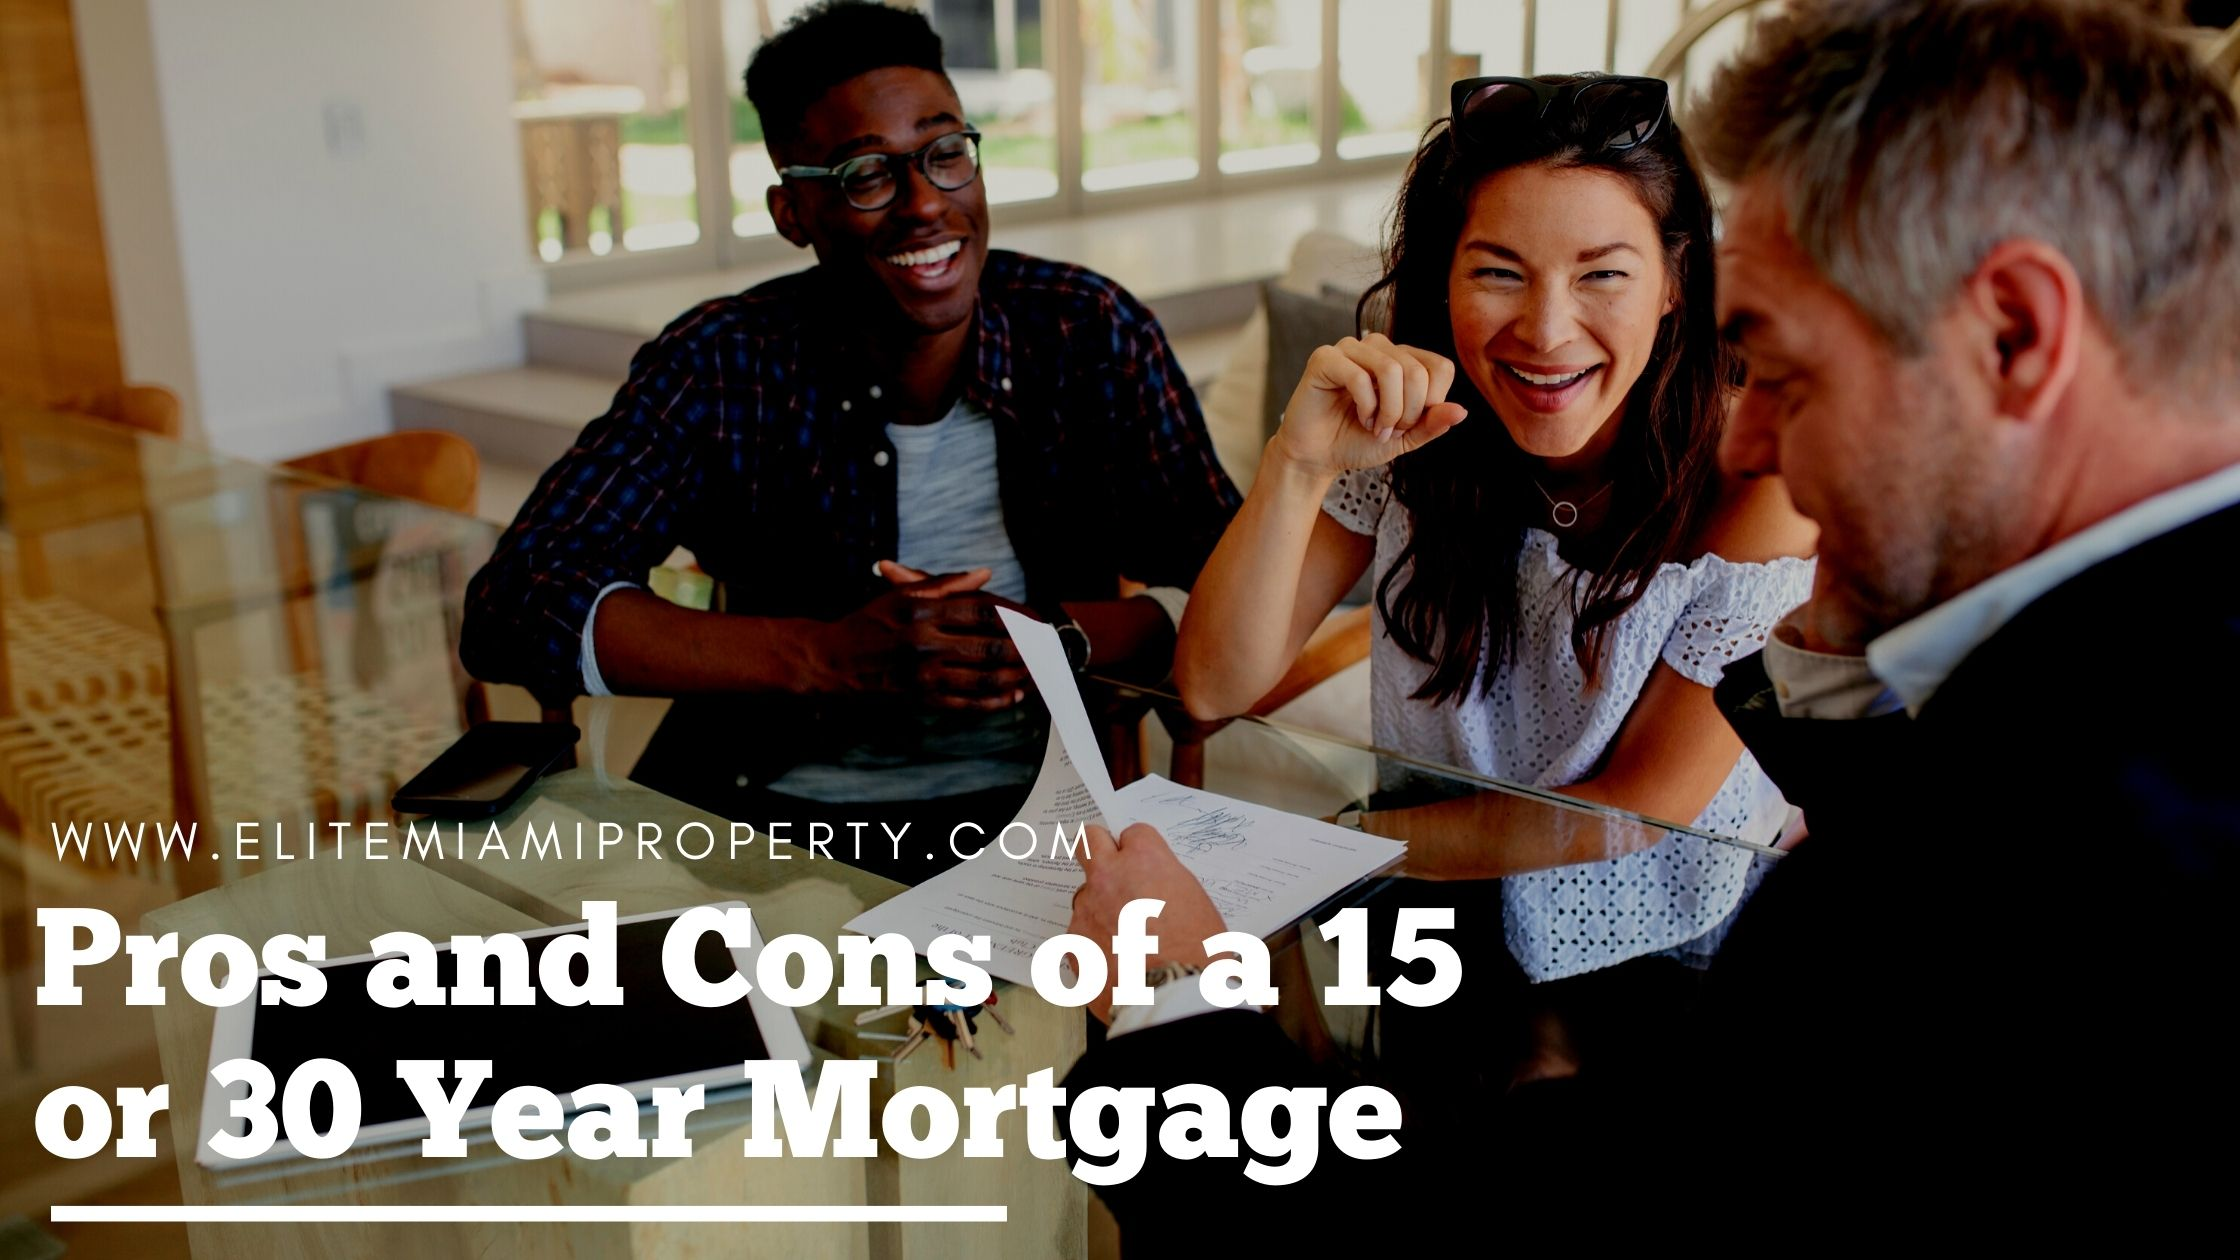 Pros and Cons of a 15 or 30 Year Mortgage